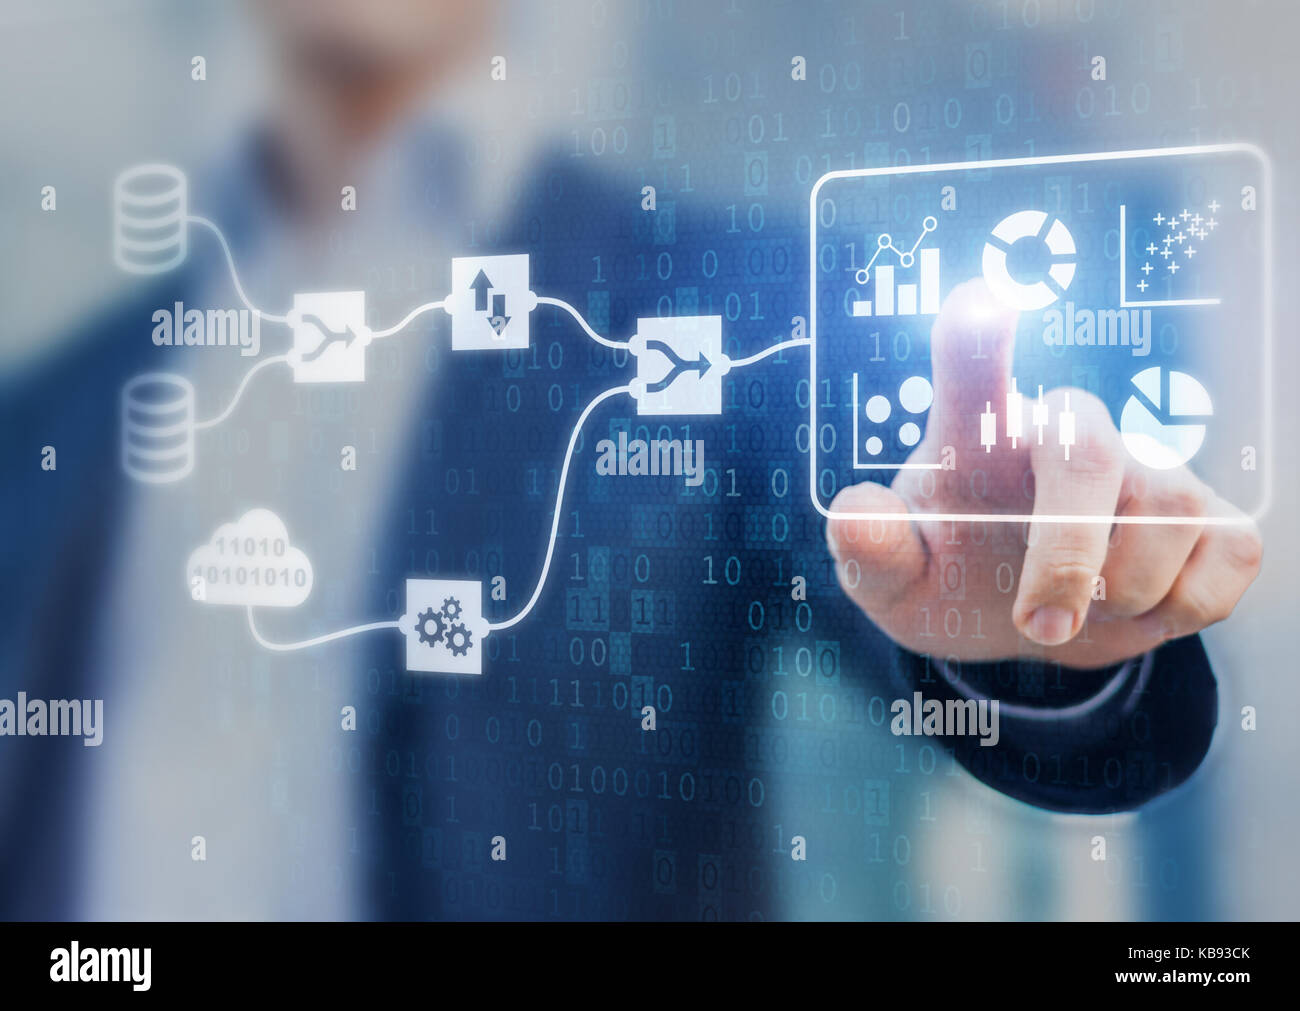 Data Management System (DMS) and Business Analytics concept with servers connected to dashboard to provide information - Stock Image